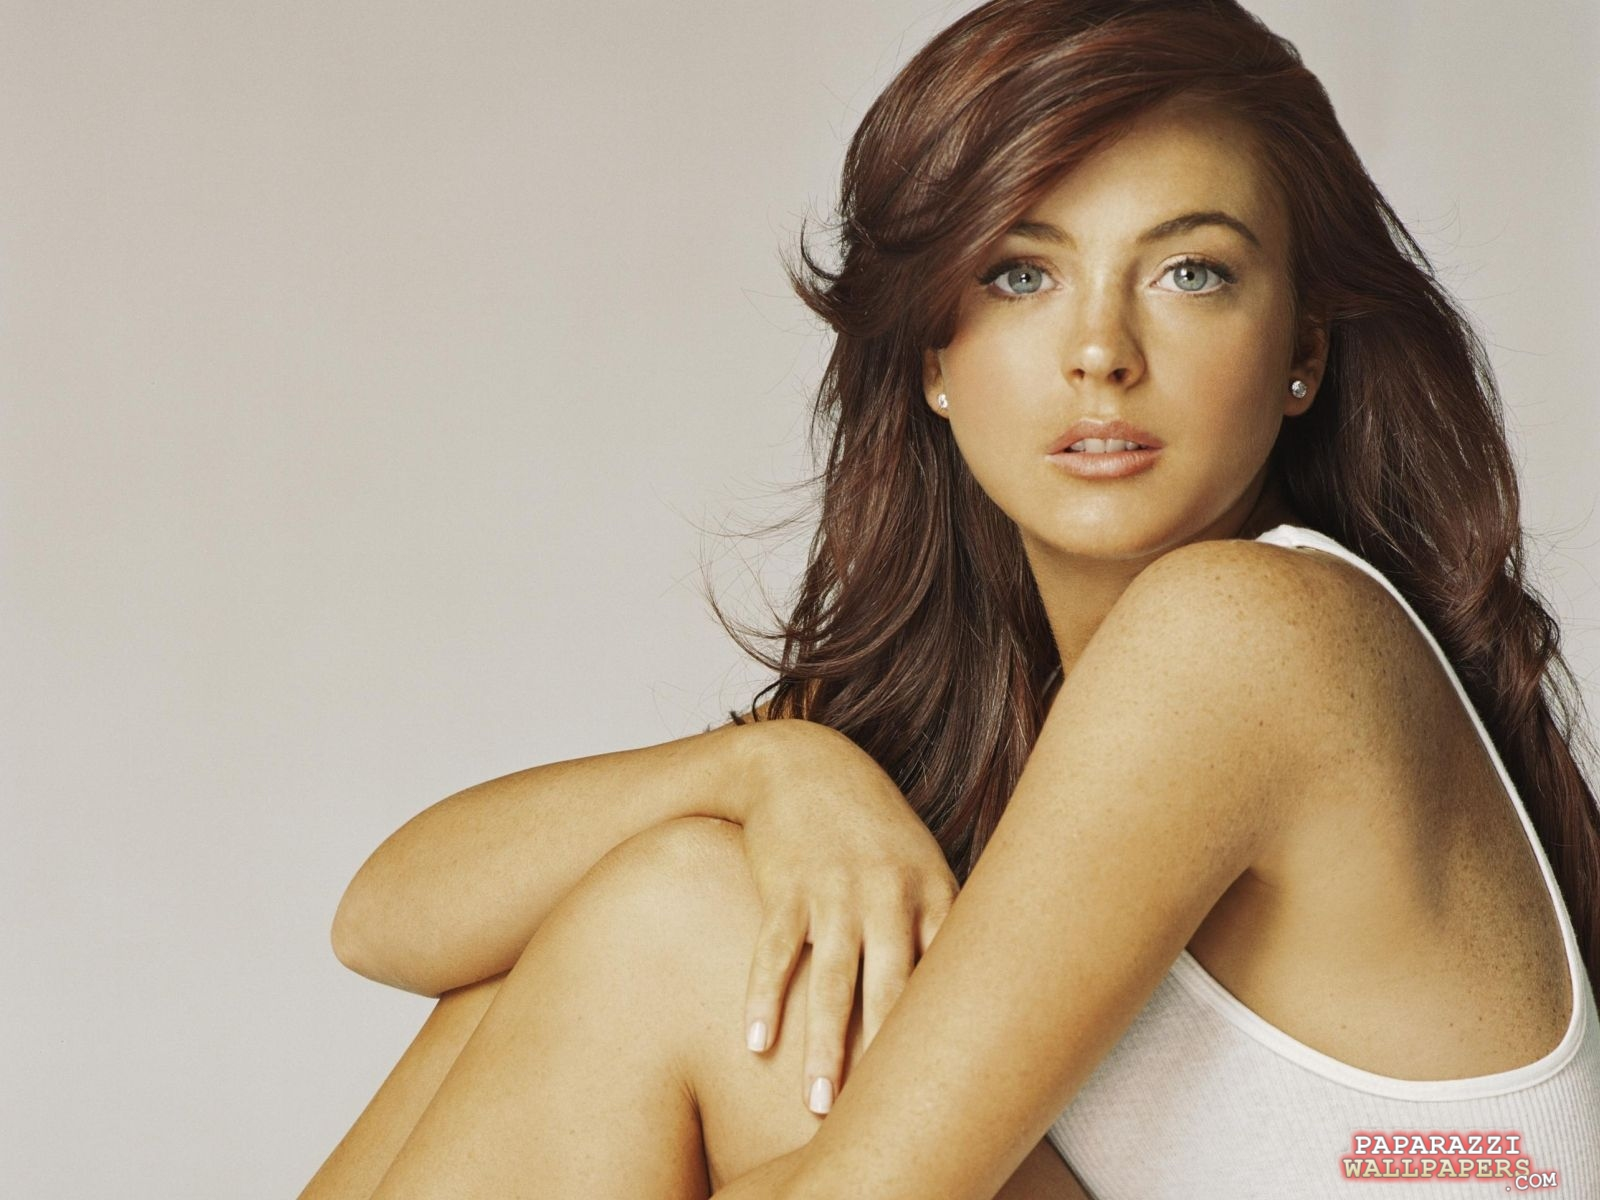 lindsay lohan wallpapers 032